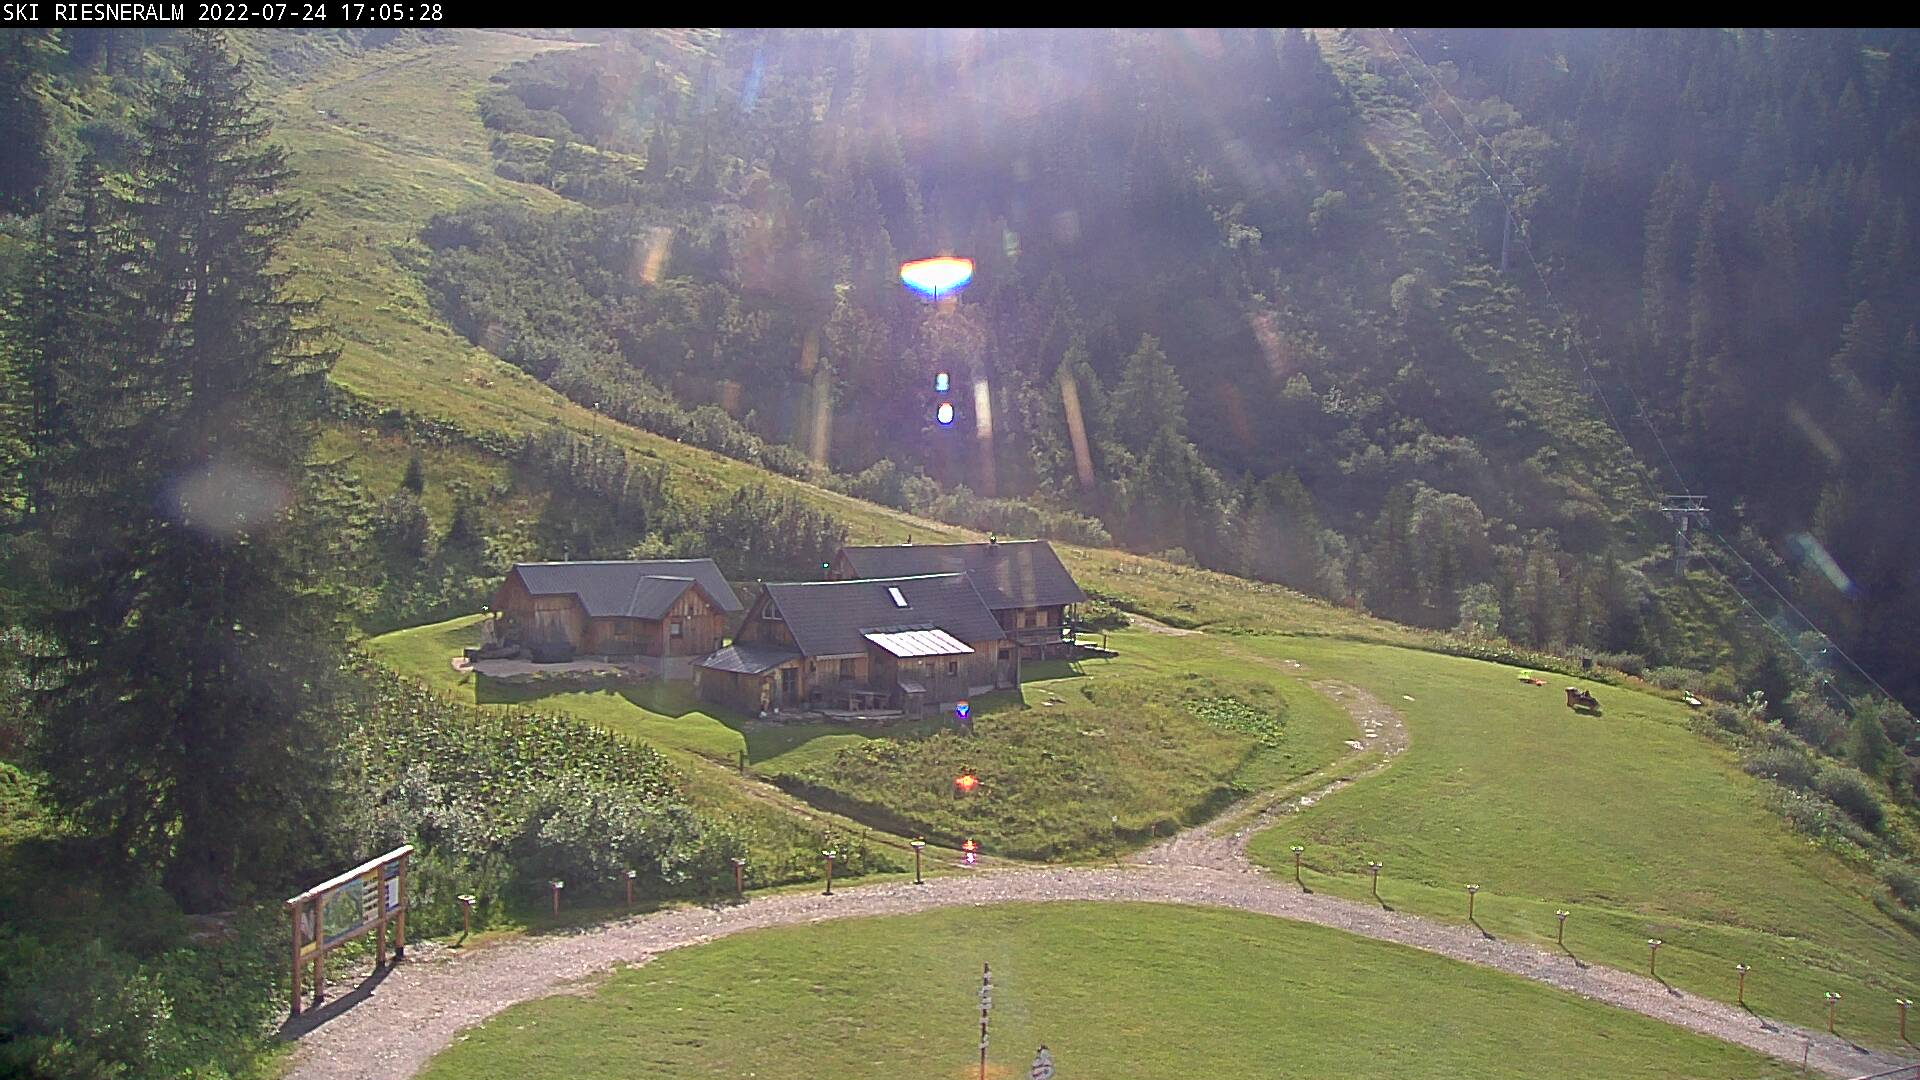 Webcam - Mittelstation 2